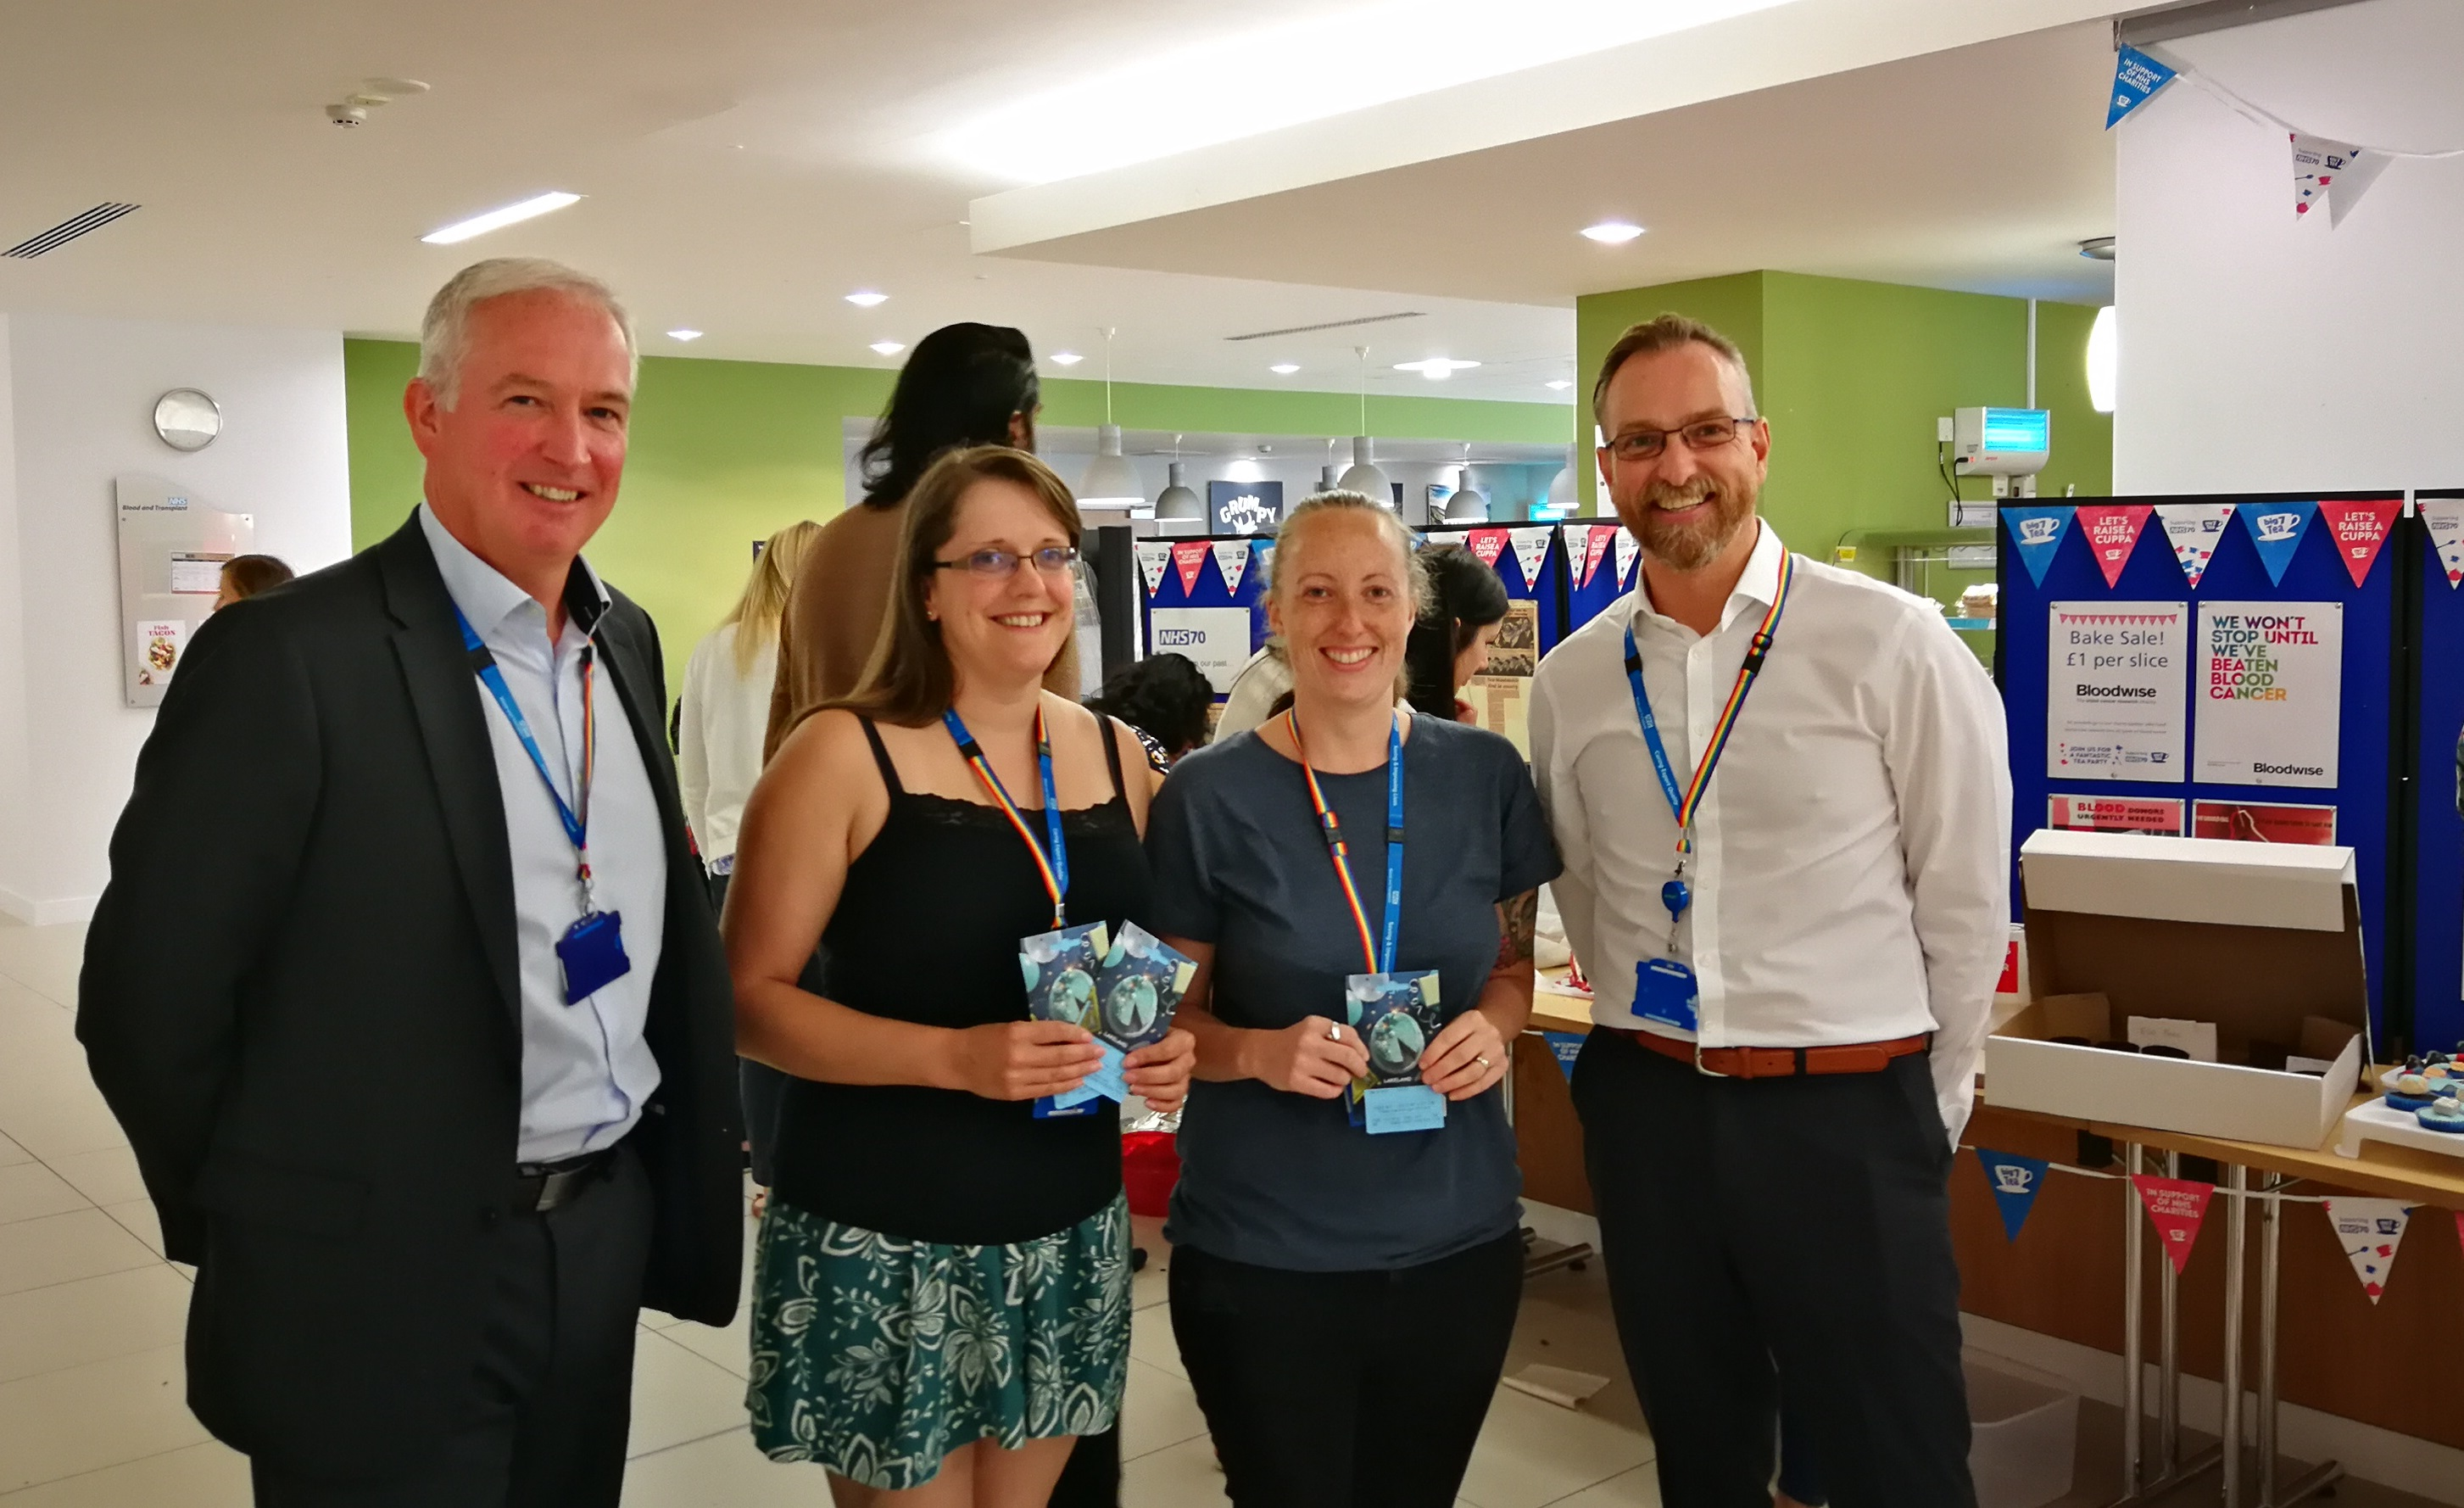 NHSBT Filton Head of Centre Daryl Hall and Estates and Facilities Assistant Director Ian Freestone with star bakers Diane Bent (Testing) and Jessica Cousins (Manufacturing)